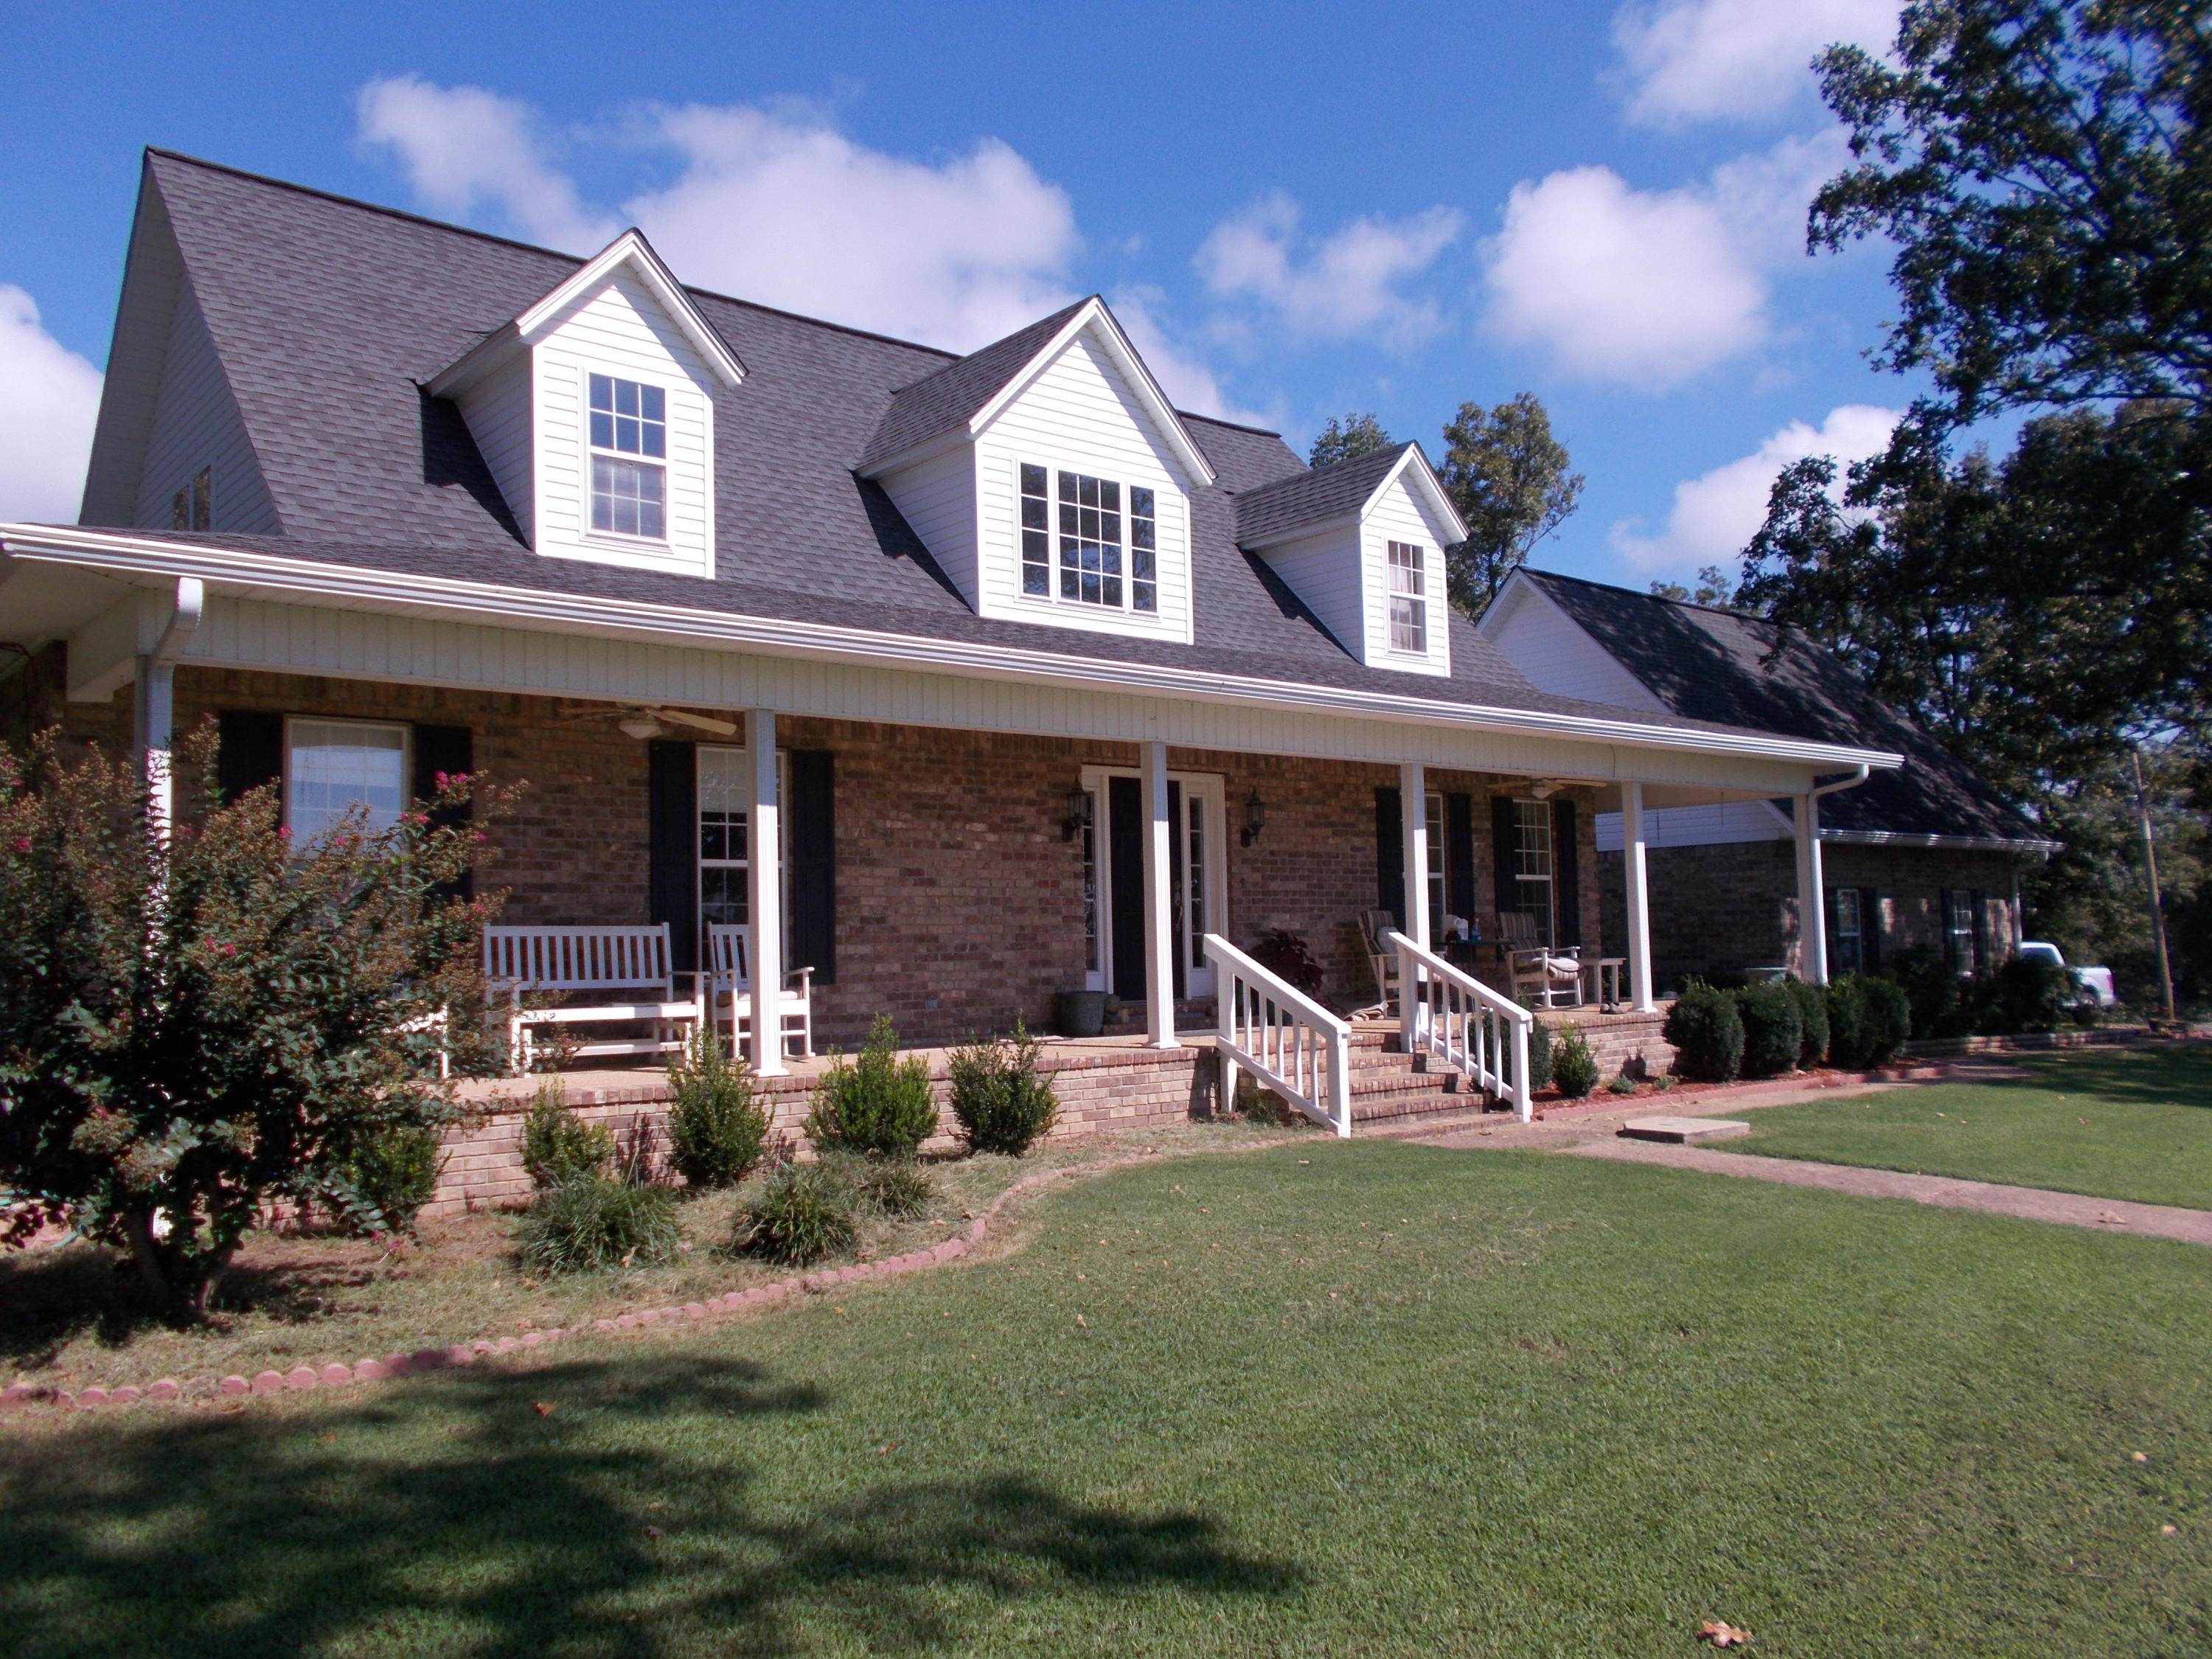 Large photo 35 of home for sale at 600 stegall Road, Clarksville, AR